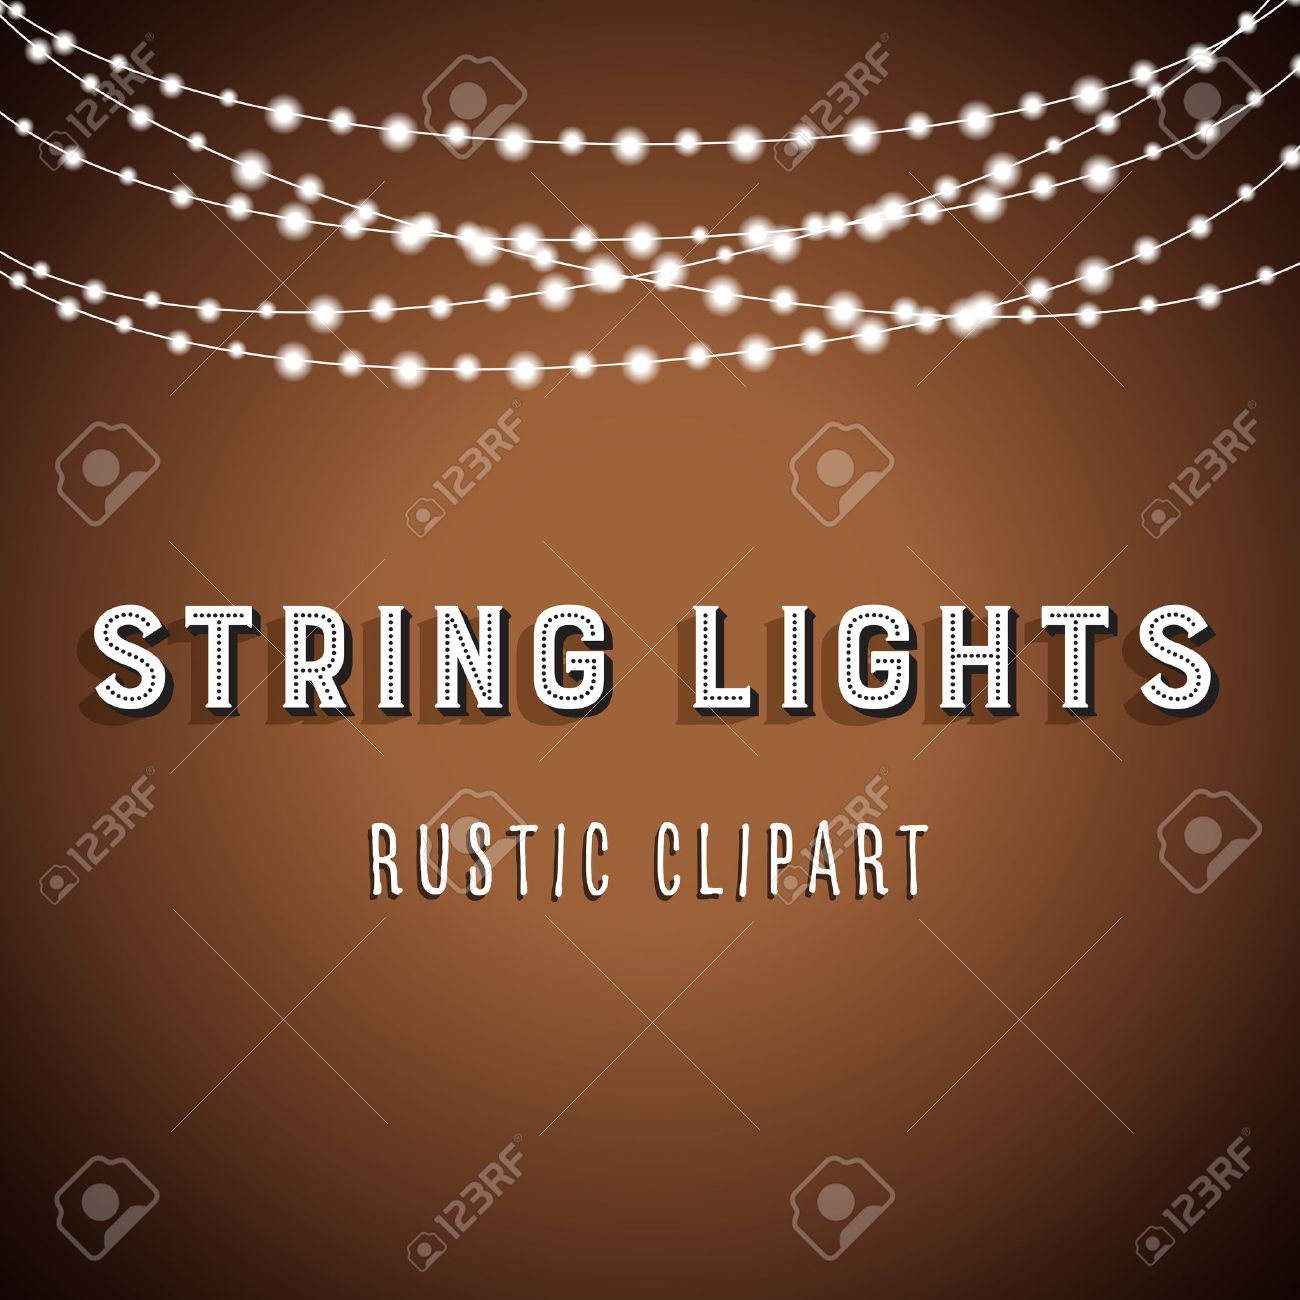 Rustic String Lights Background - Rustic String Lights Vector Clipart 10 - 64751675